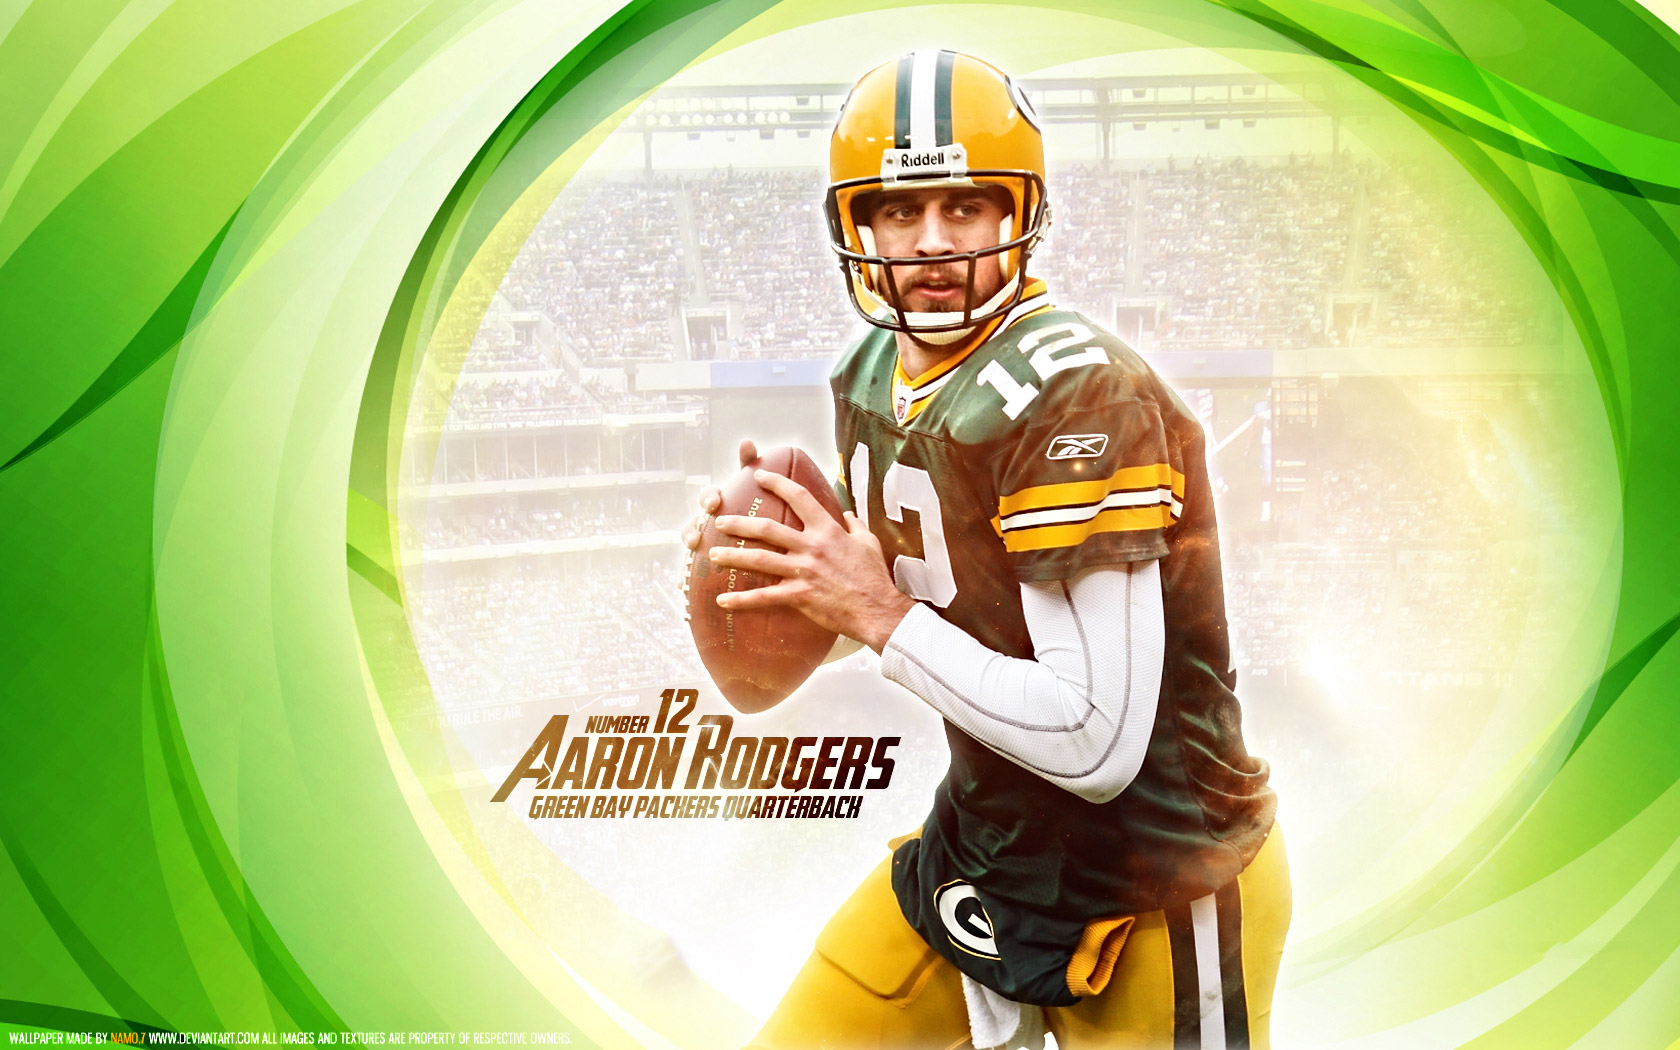 Aaron Rodgers Wallpaper And Background Image